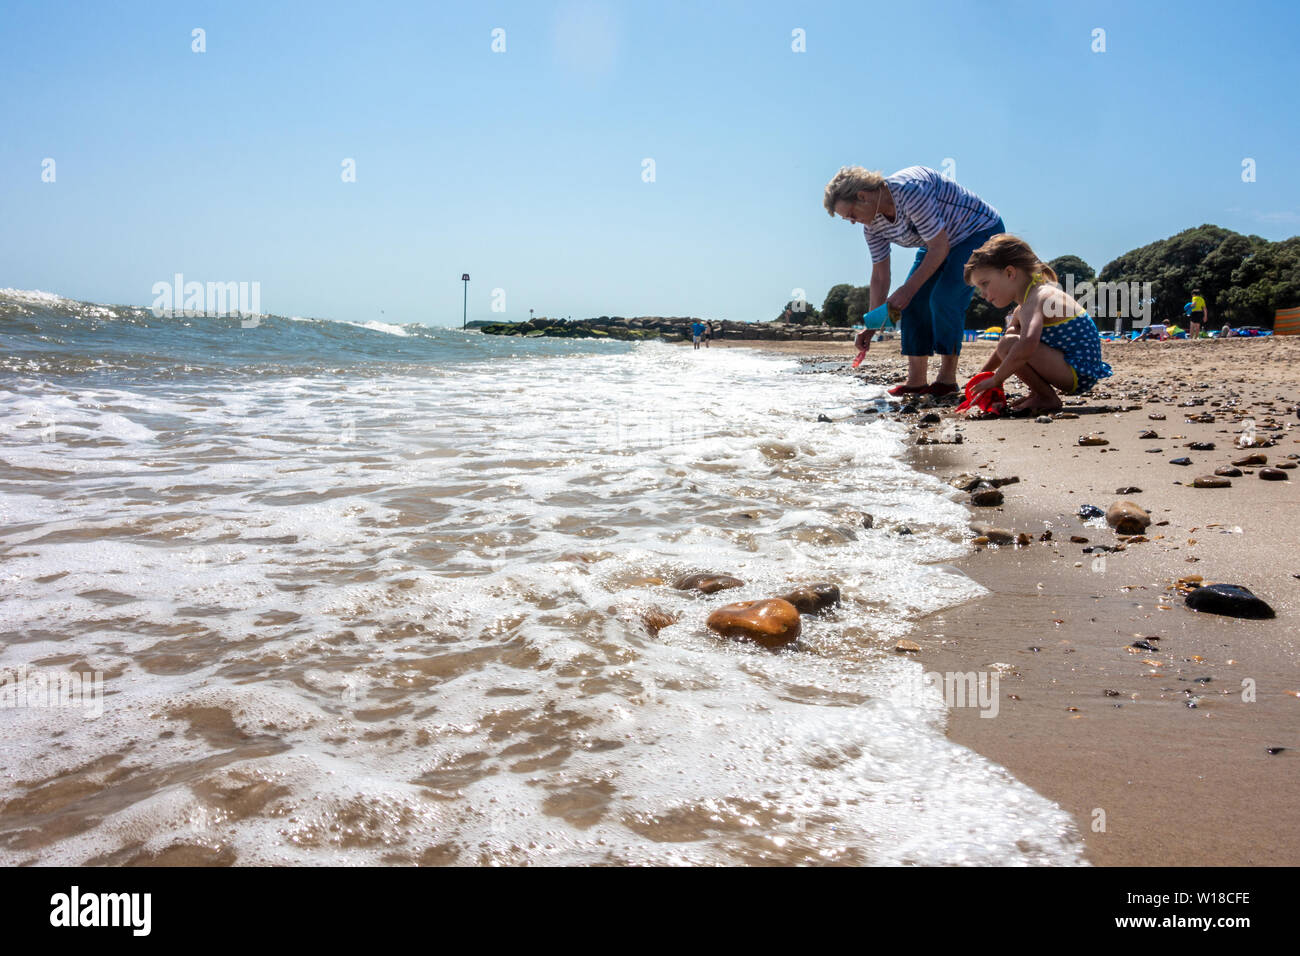 a-young-child-plays-with-her-mum-at-the-waters-edge-on-avon-beach-at-mudeford-christchurch-in-dorset-uk-on-a-hot-summer-day-with-blue-sky-W18CFE.jpg